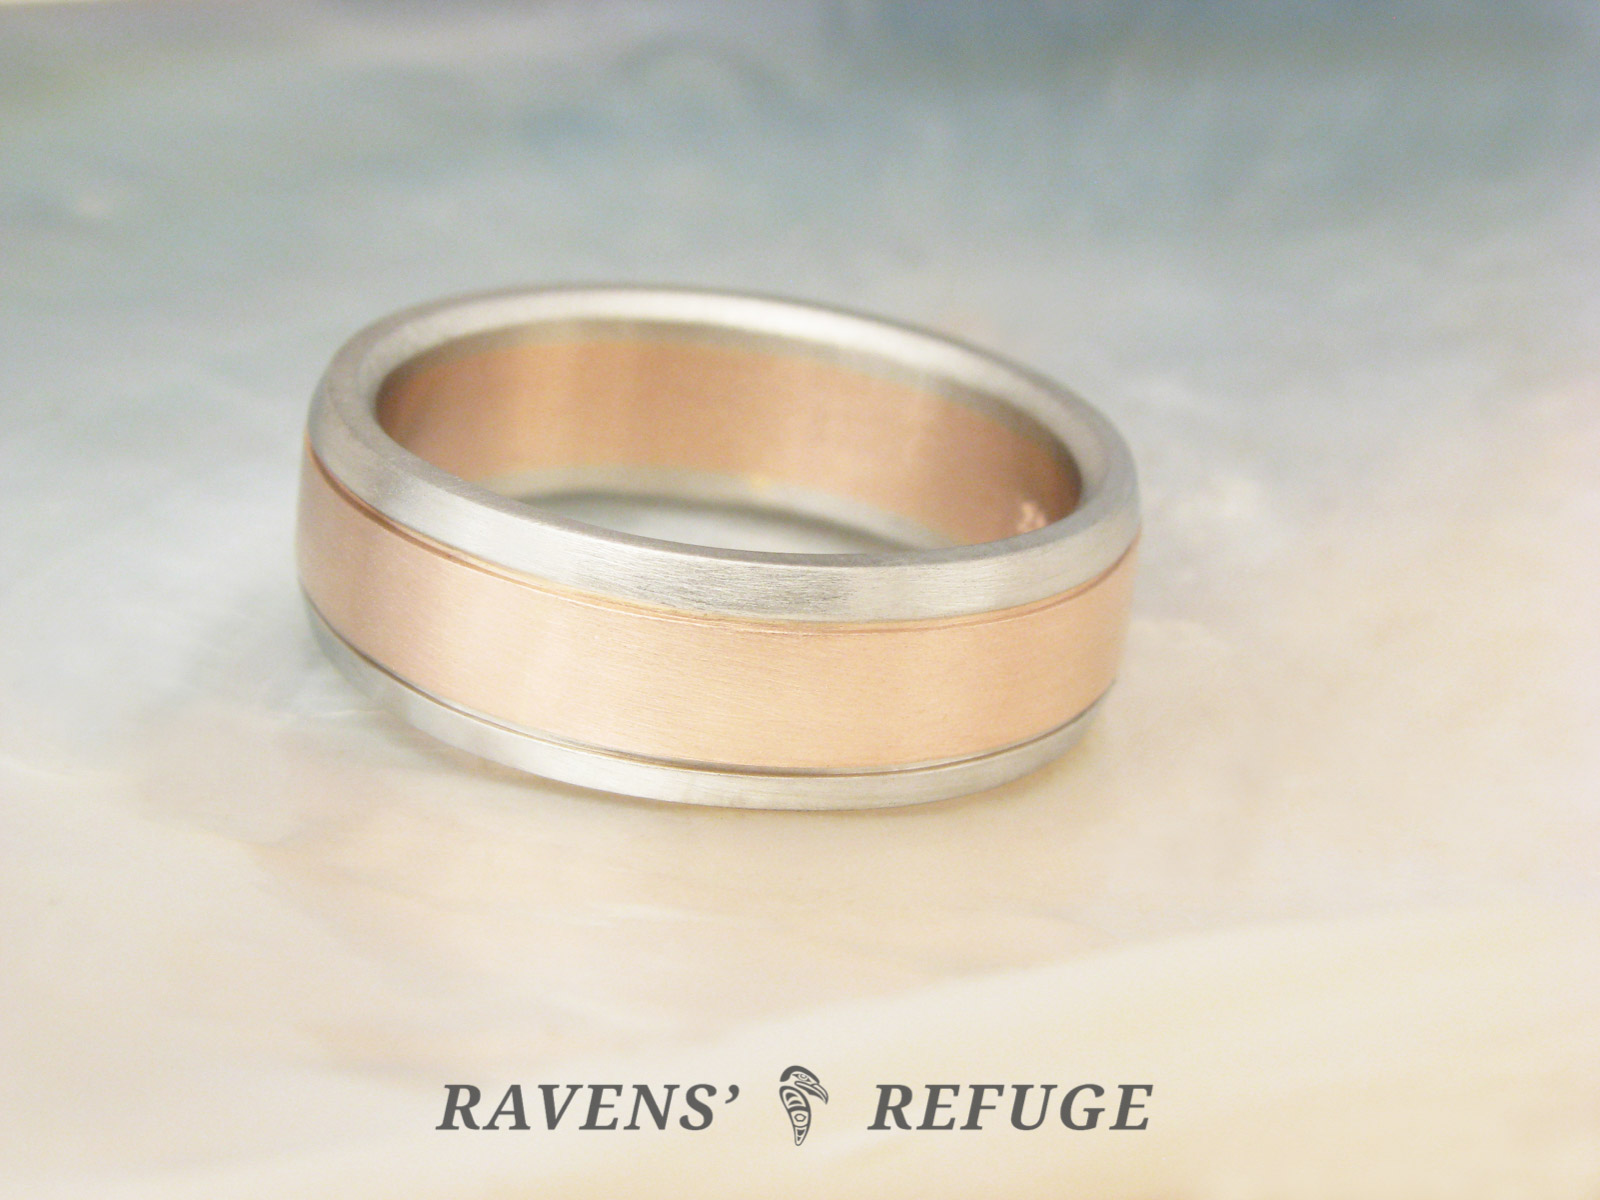 It is an image of rose gold & white gold wedding band – men's two tone ring